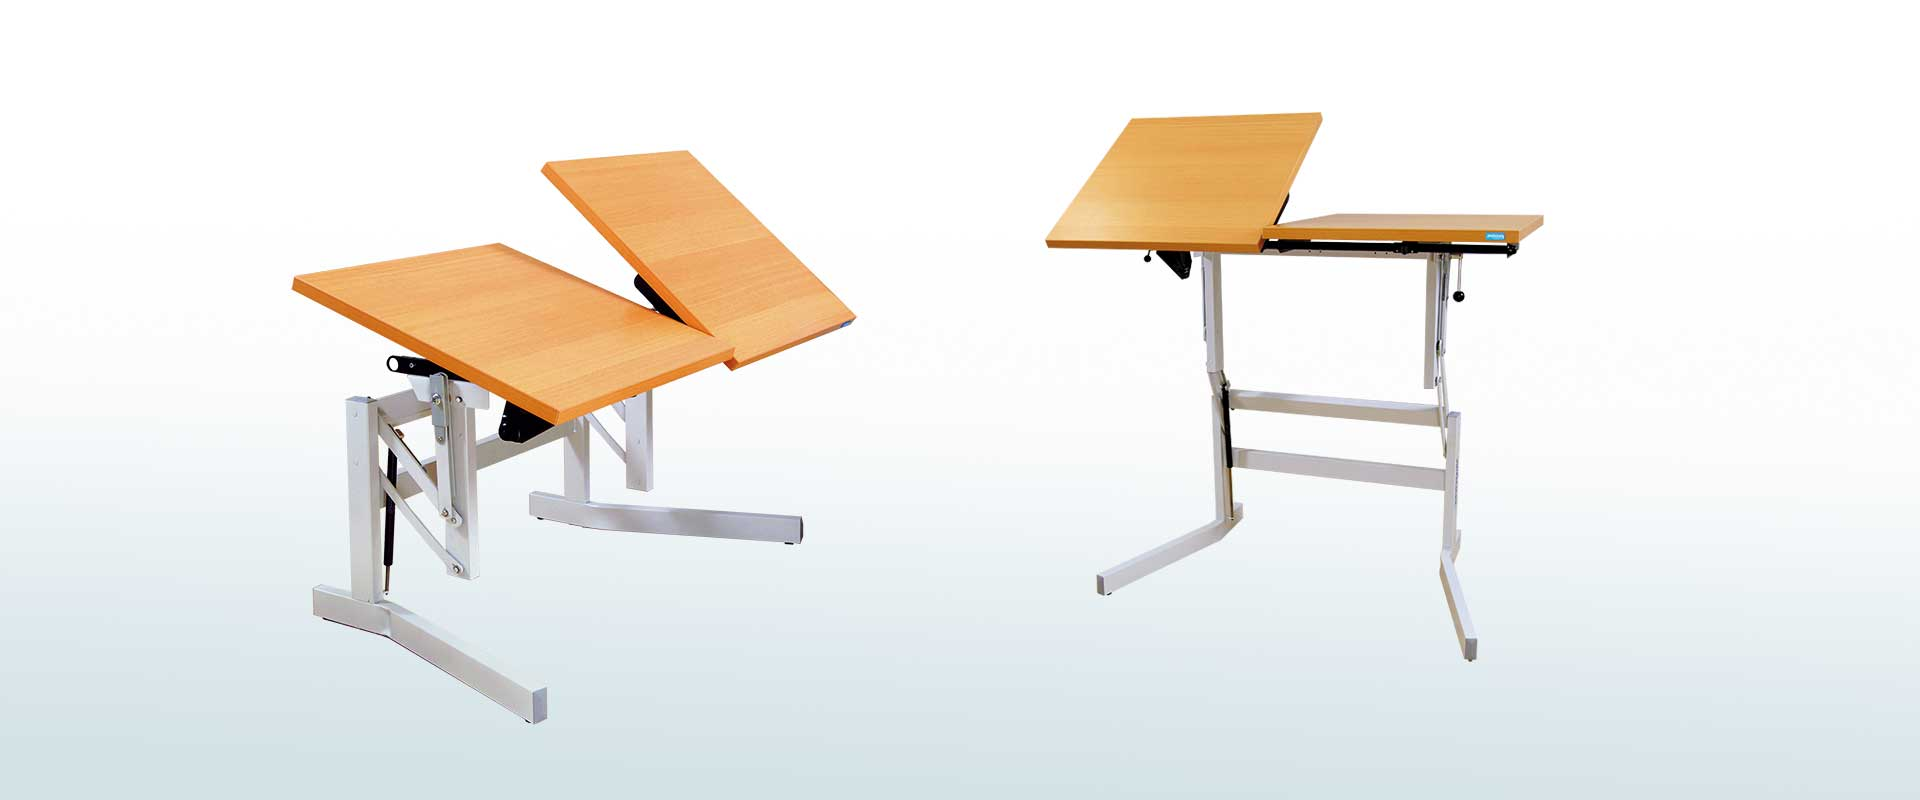 sit and stand-on desk ergo P3